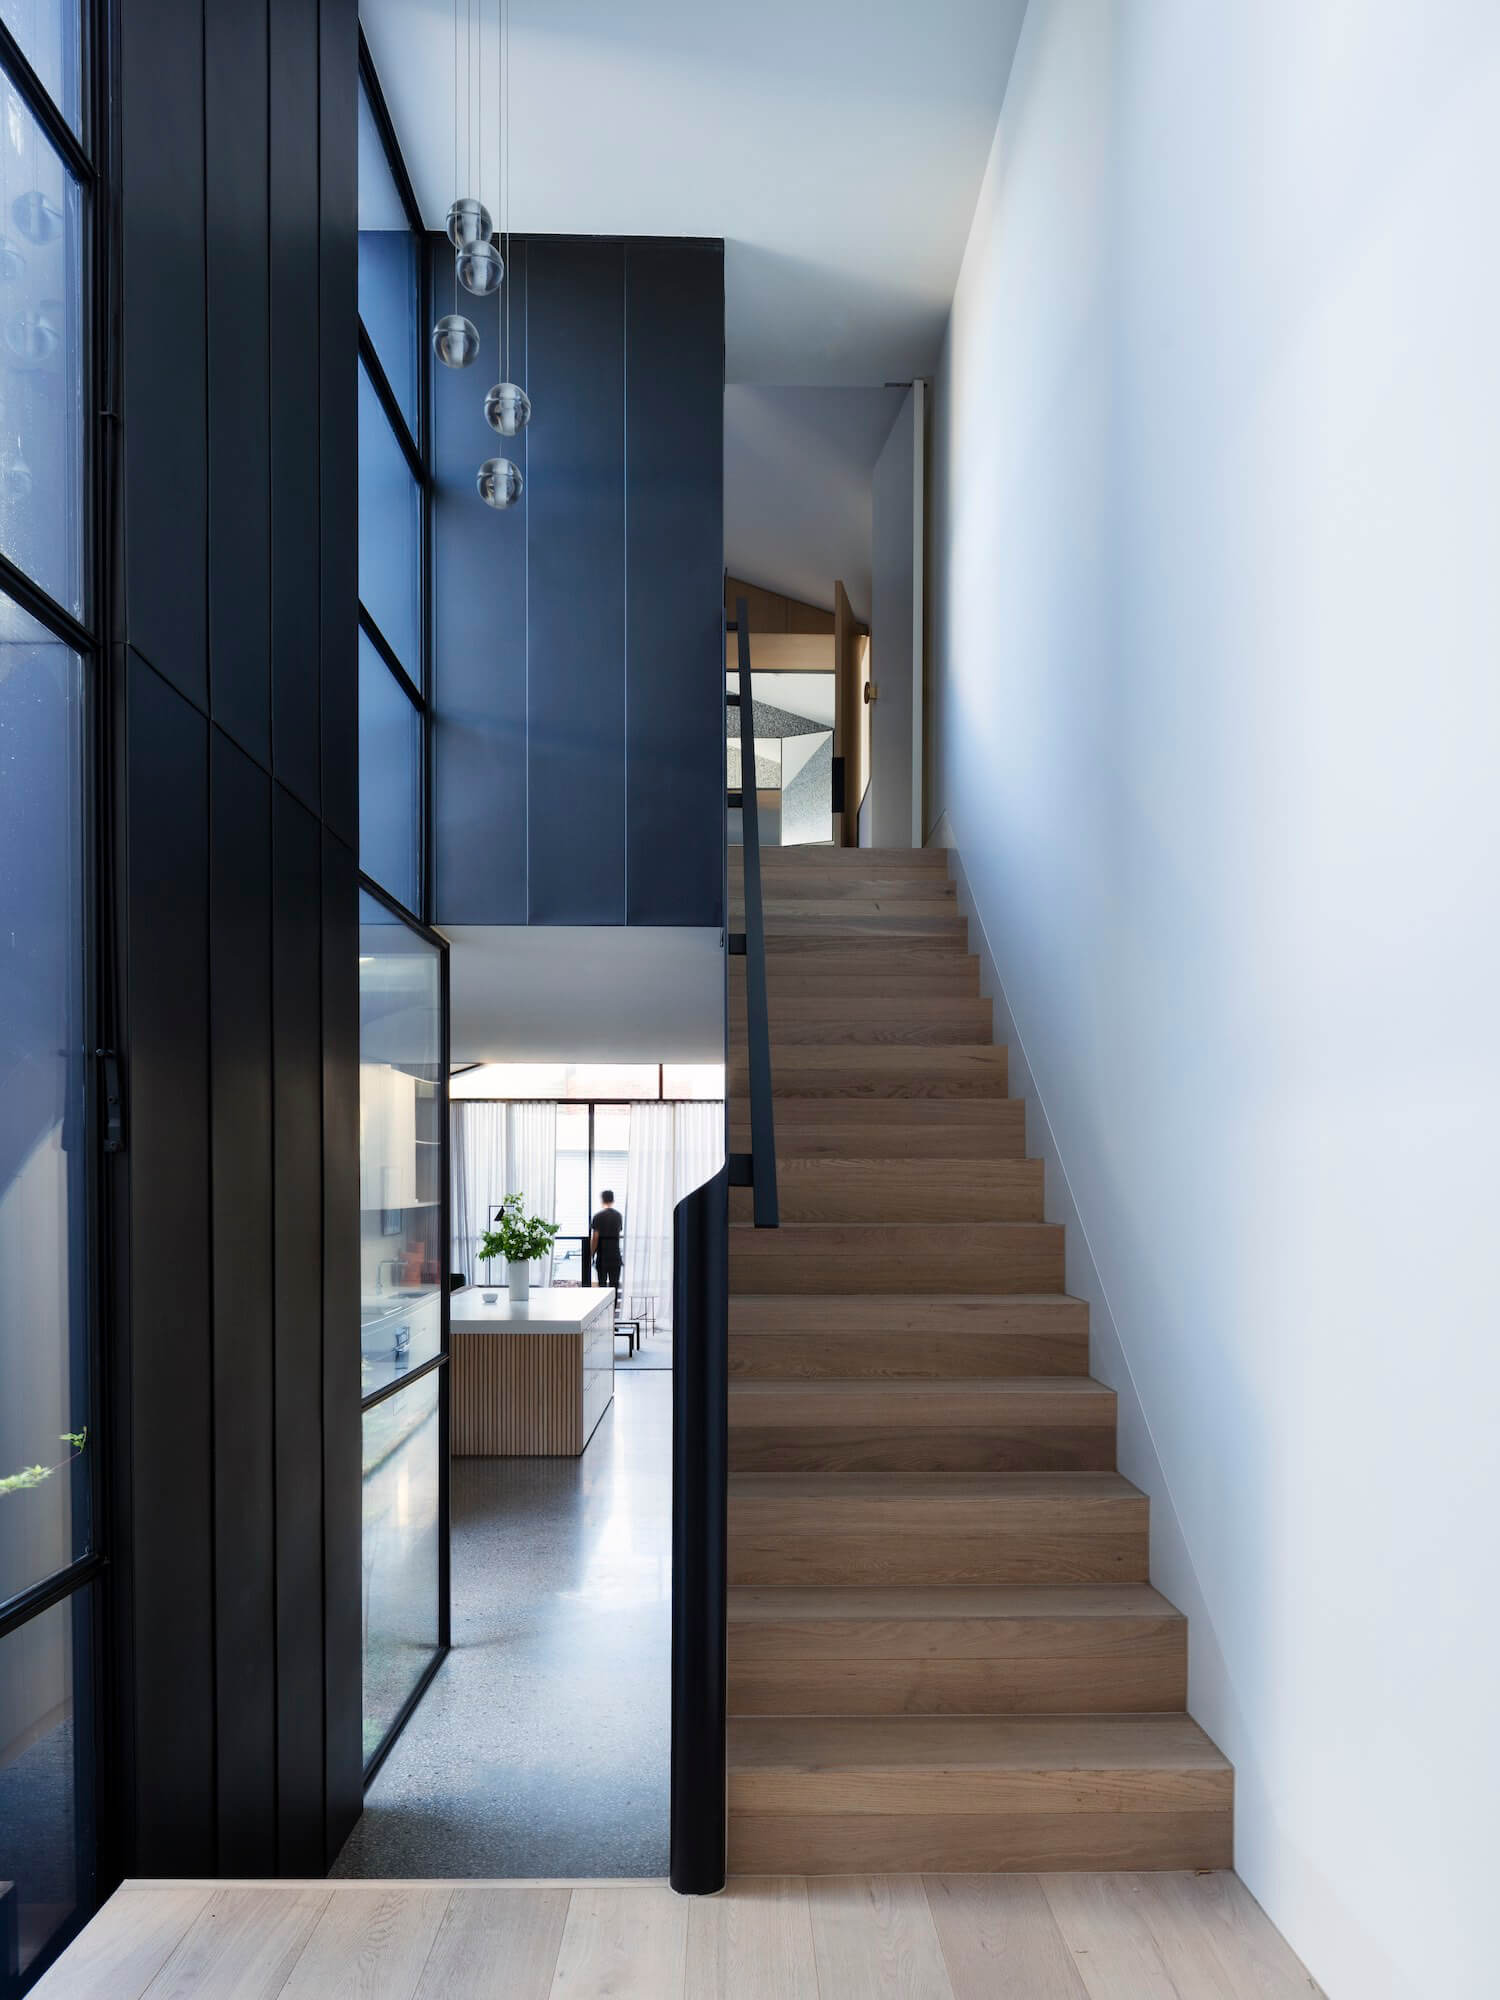 Est living port melbourne house pandolfini architects 10